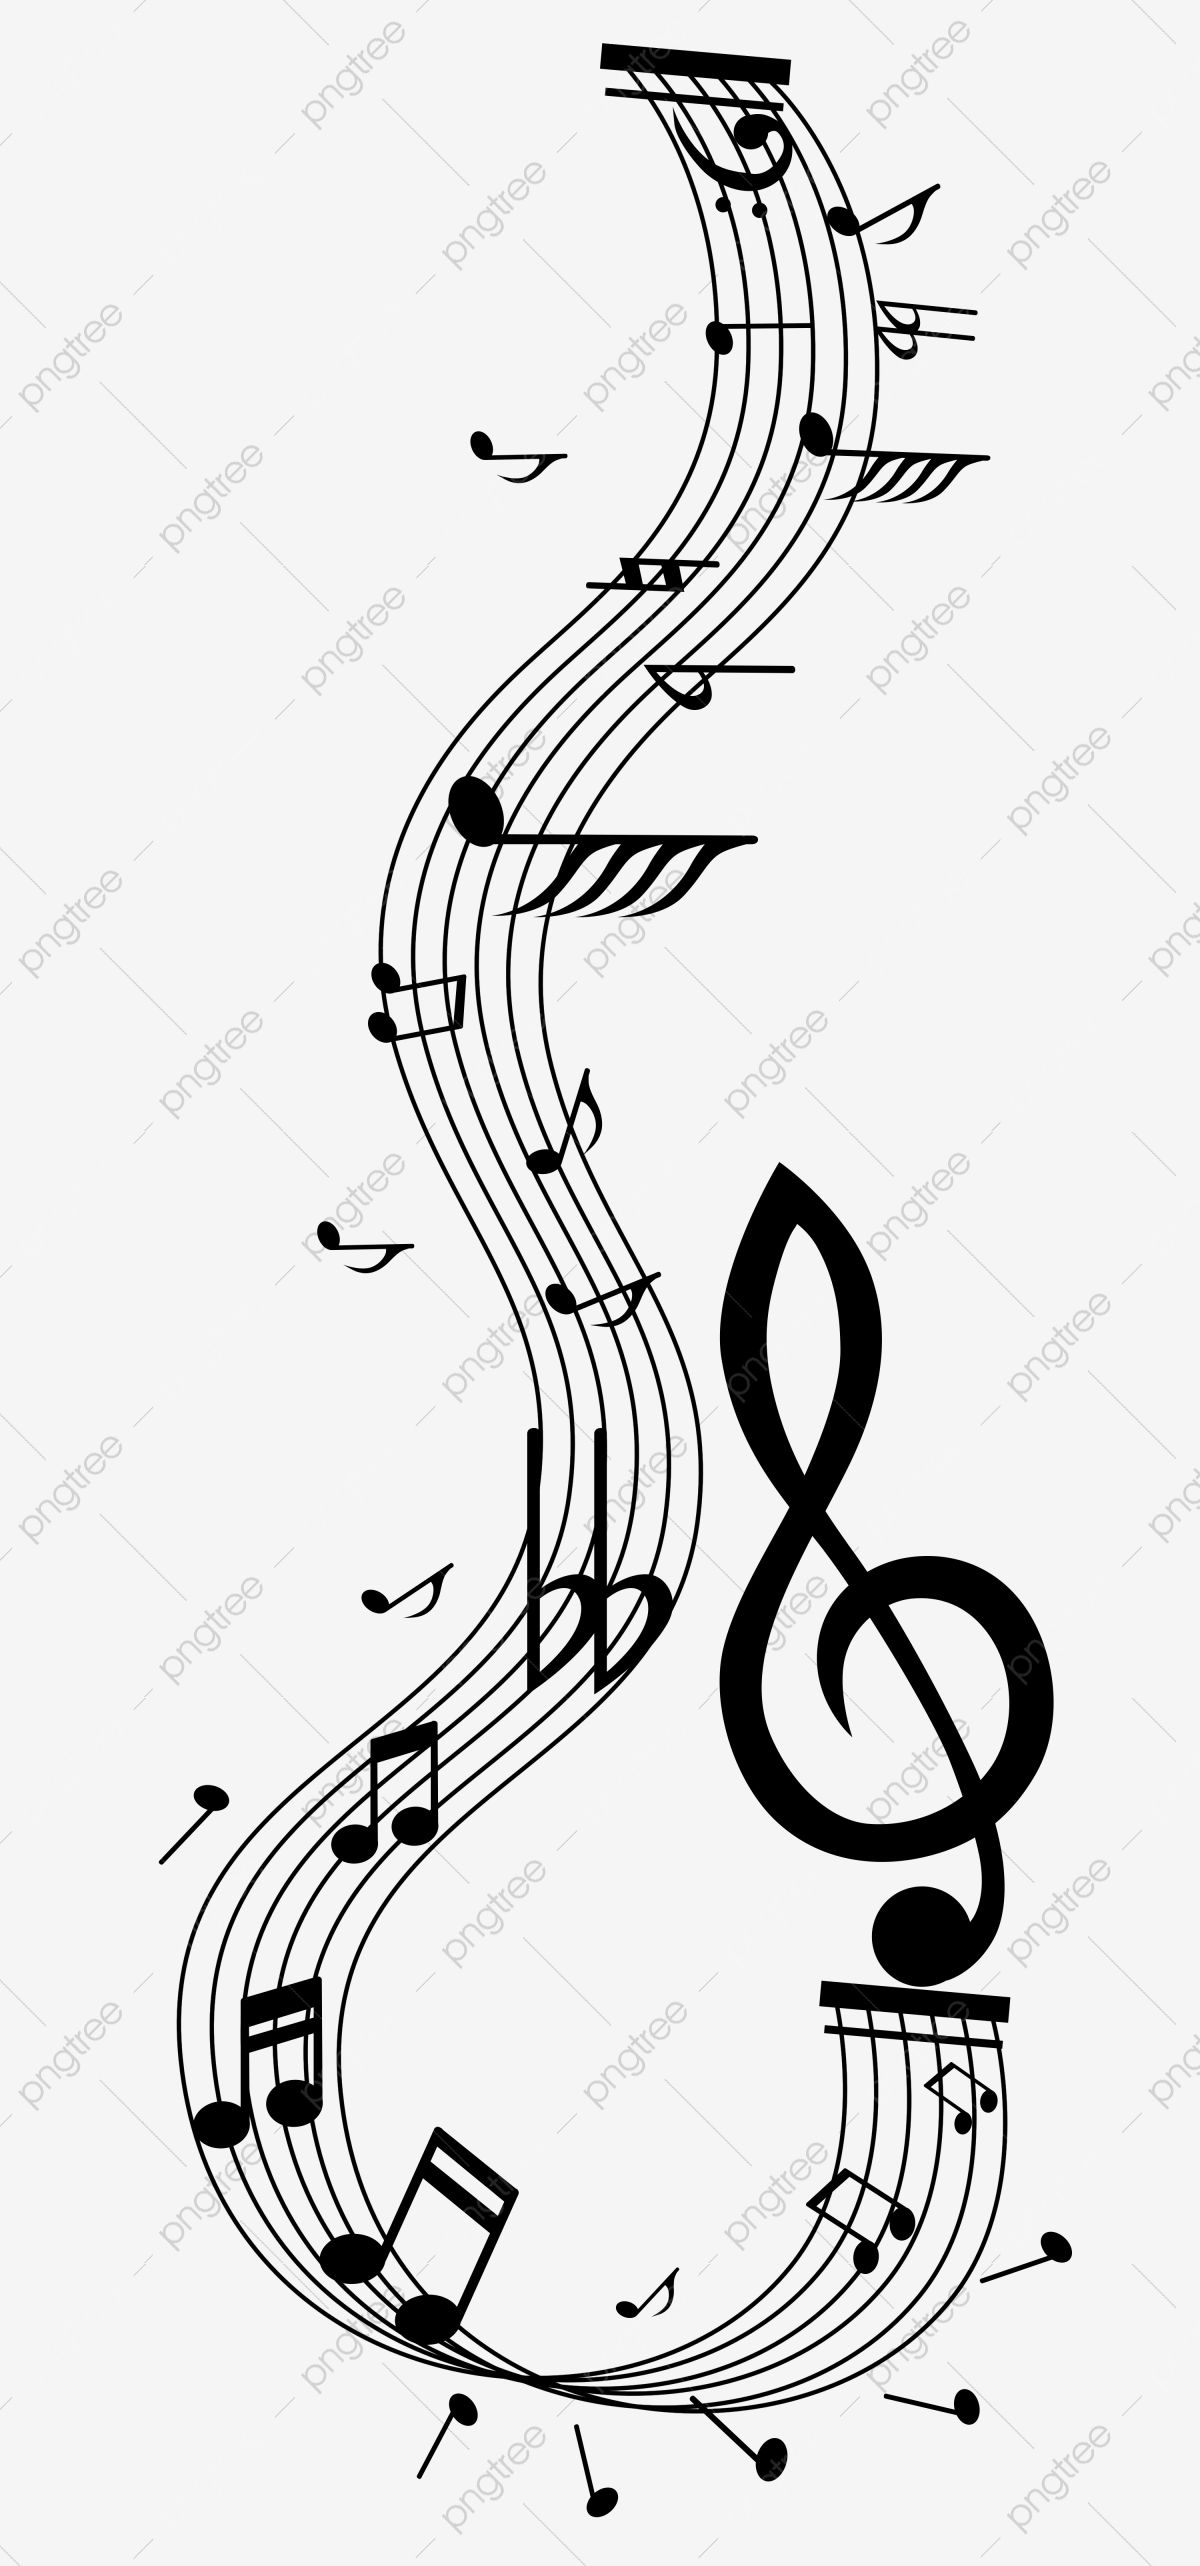 Cute Cute Black And White Musical Notes Staves Ps Path Editable Decorative Pattern Music Clipart Cute Black And White Png Transparent Clipart Image And Psd F Png Images For Editing Black